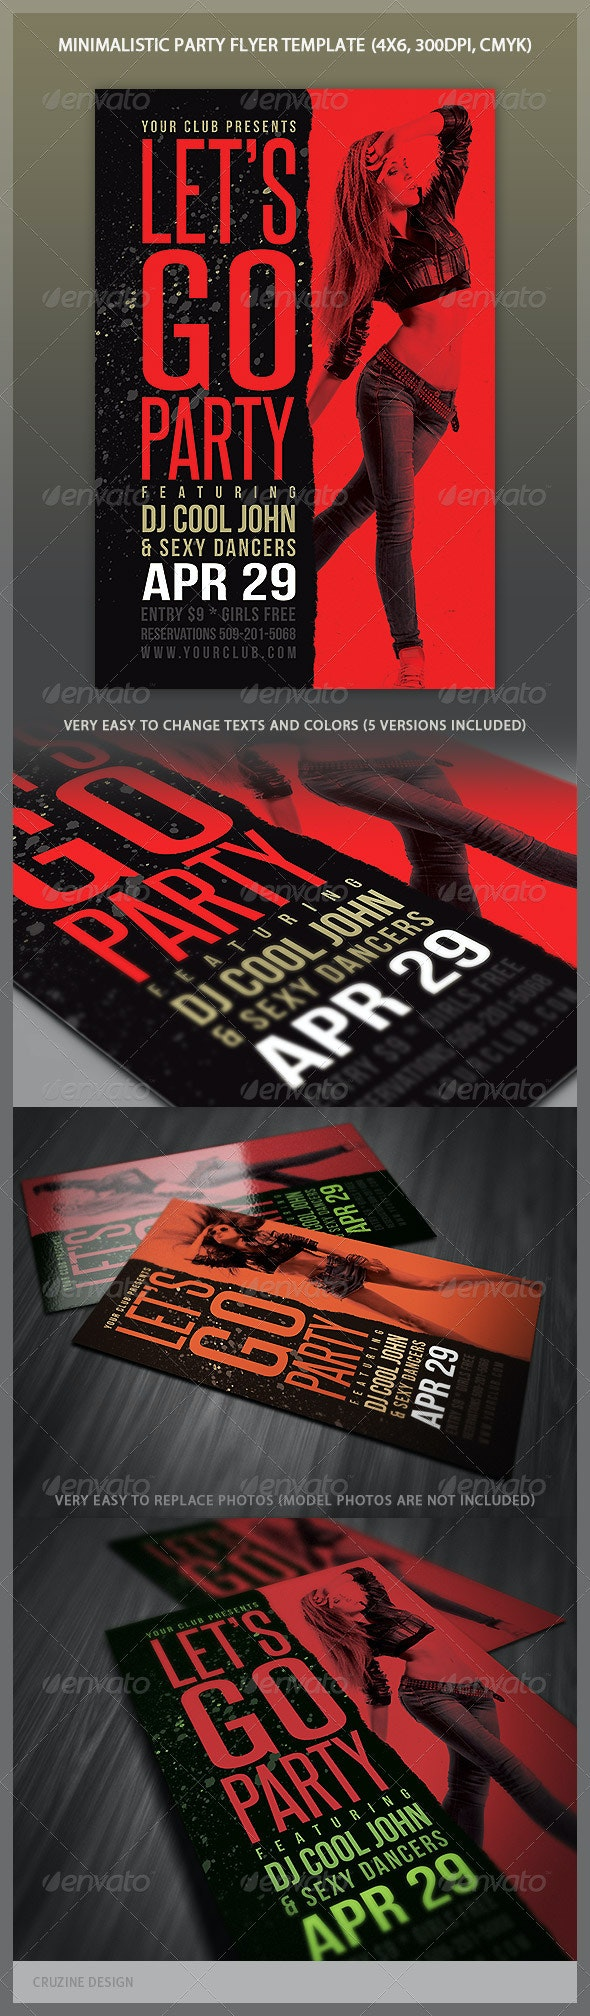 Minimalistic Party Flyer - Clubs & Parties Events